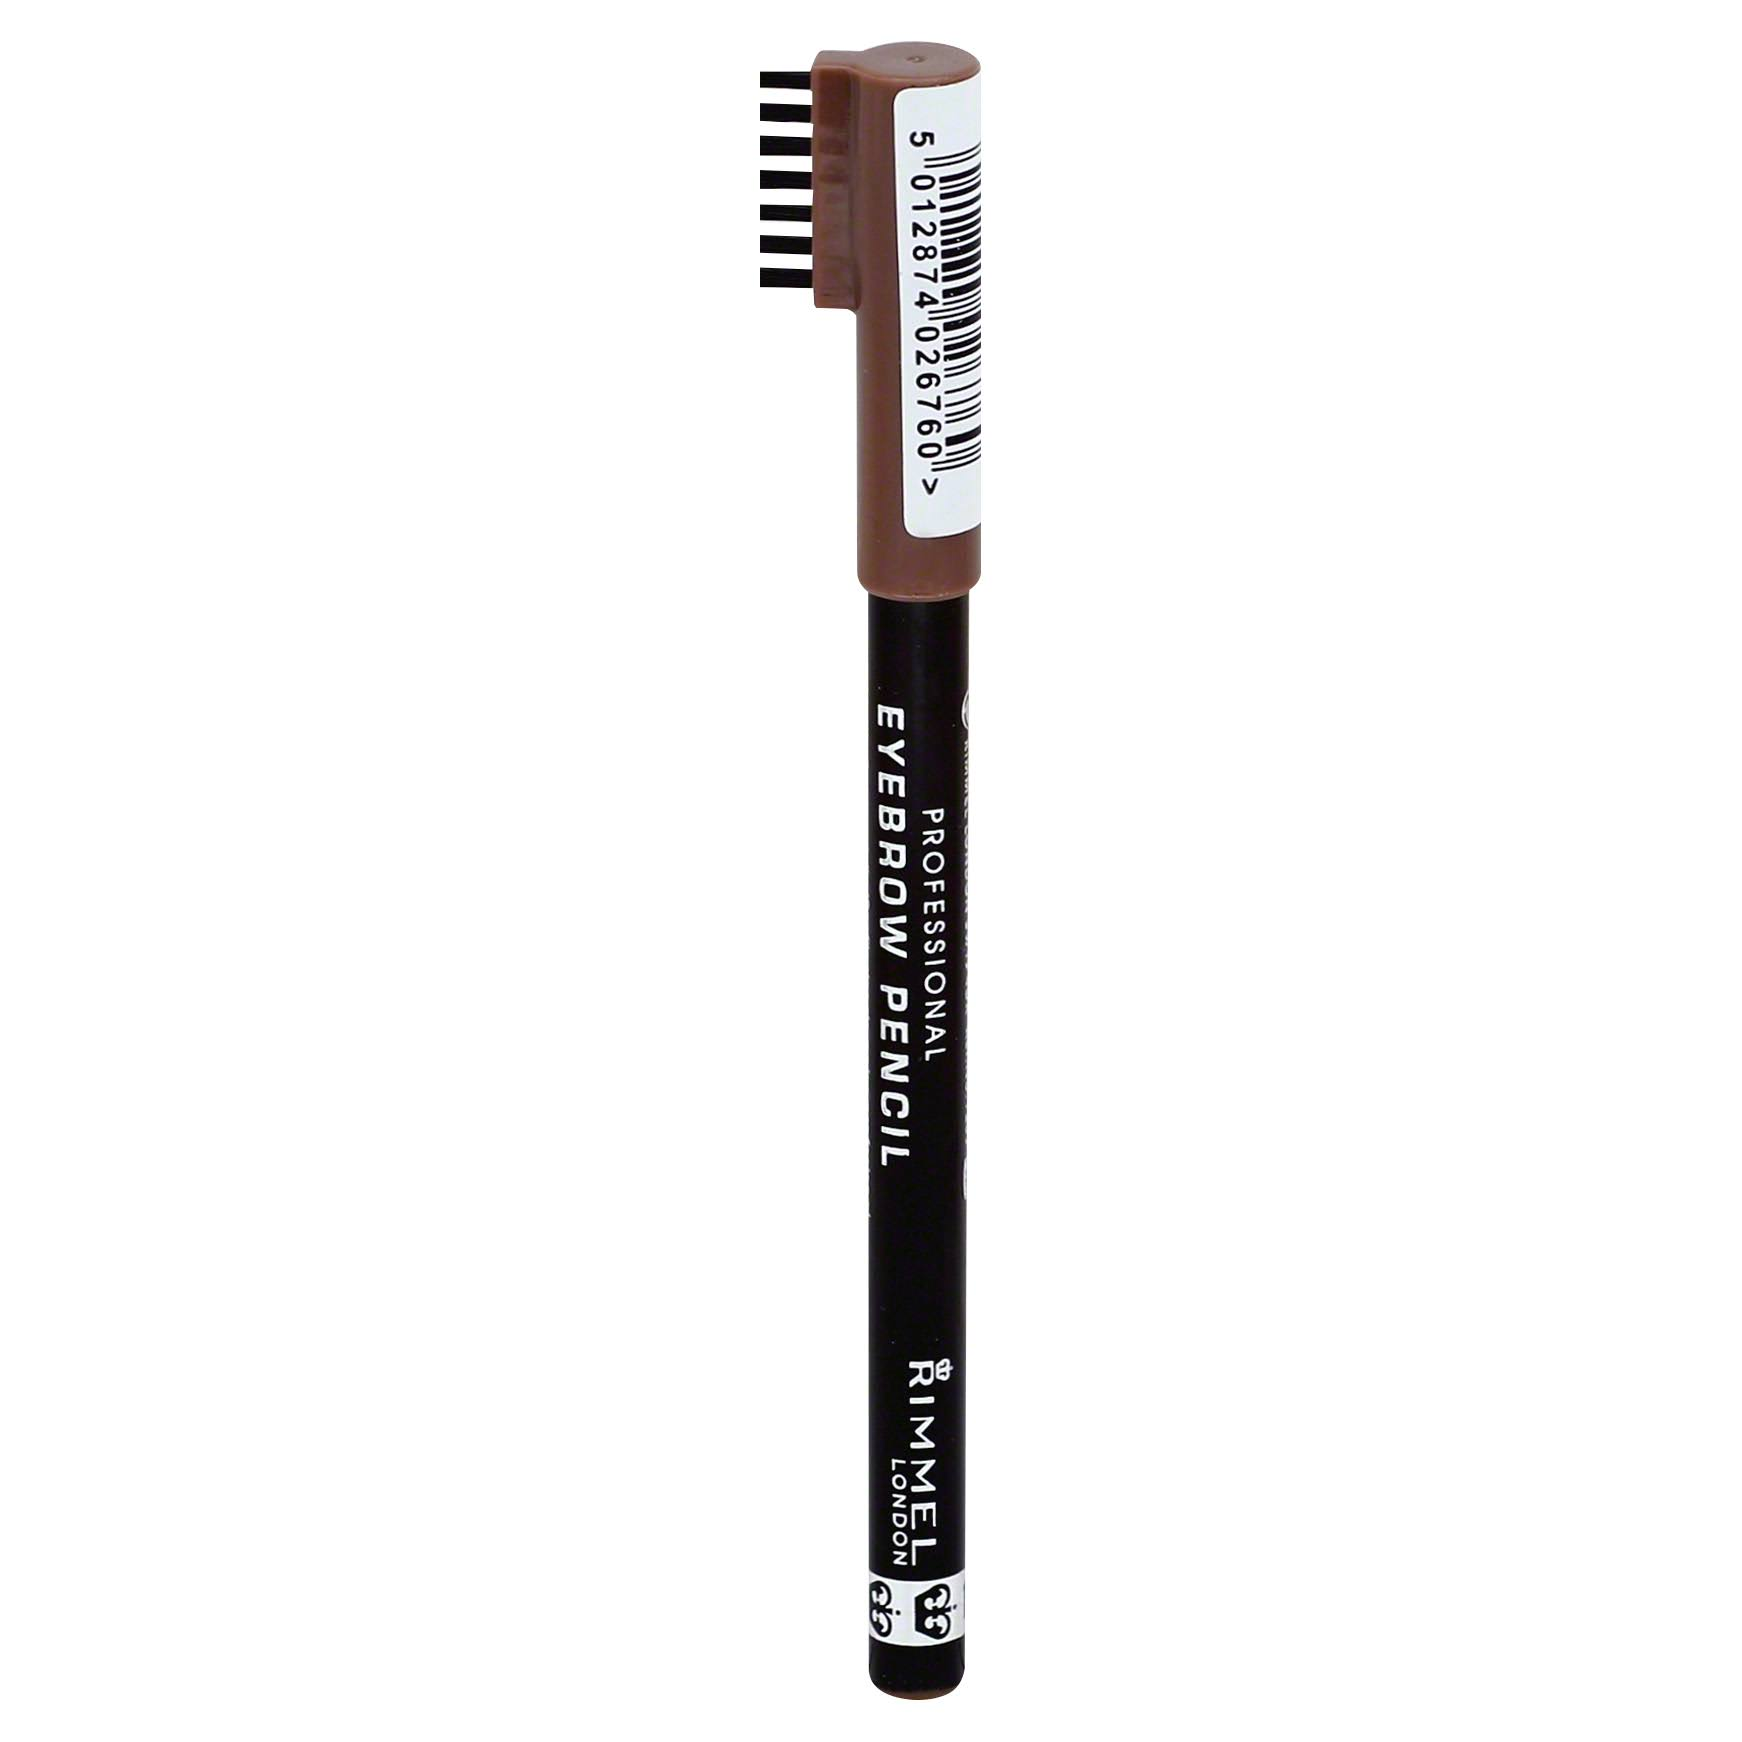 Rimmel London Professional Eyebrow Pencil - 002 Hazel, 1.4g